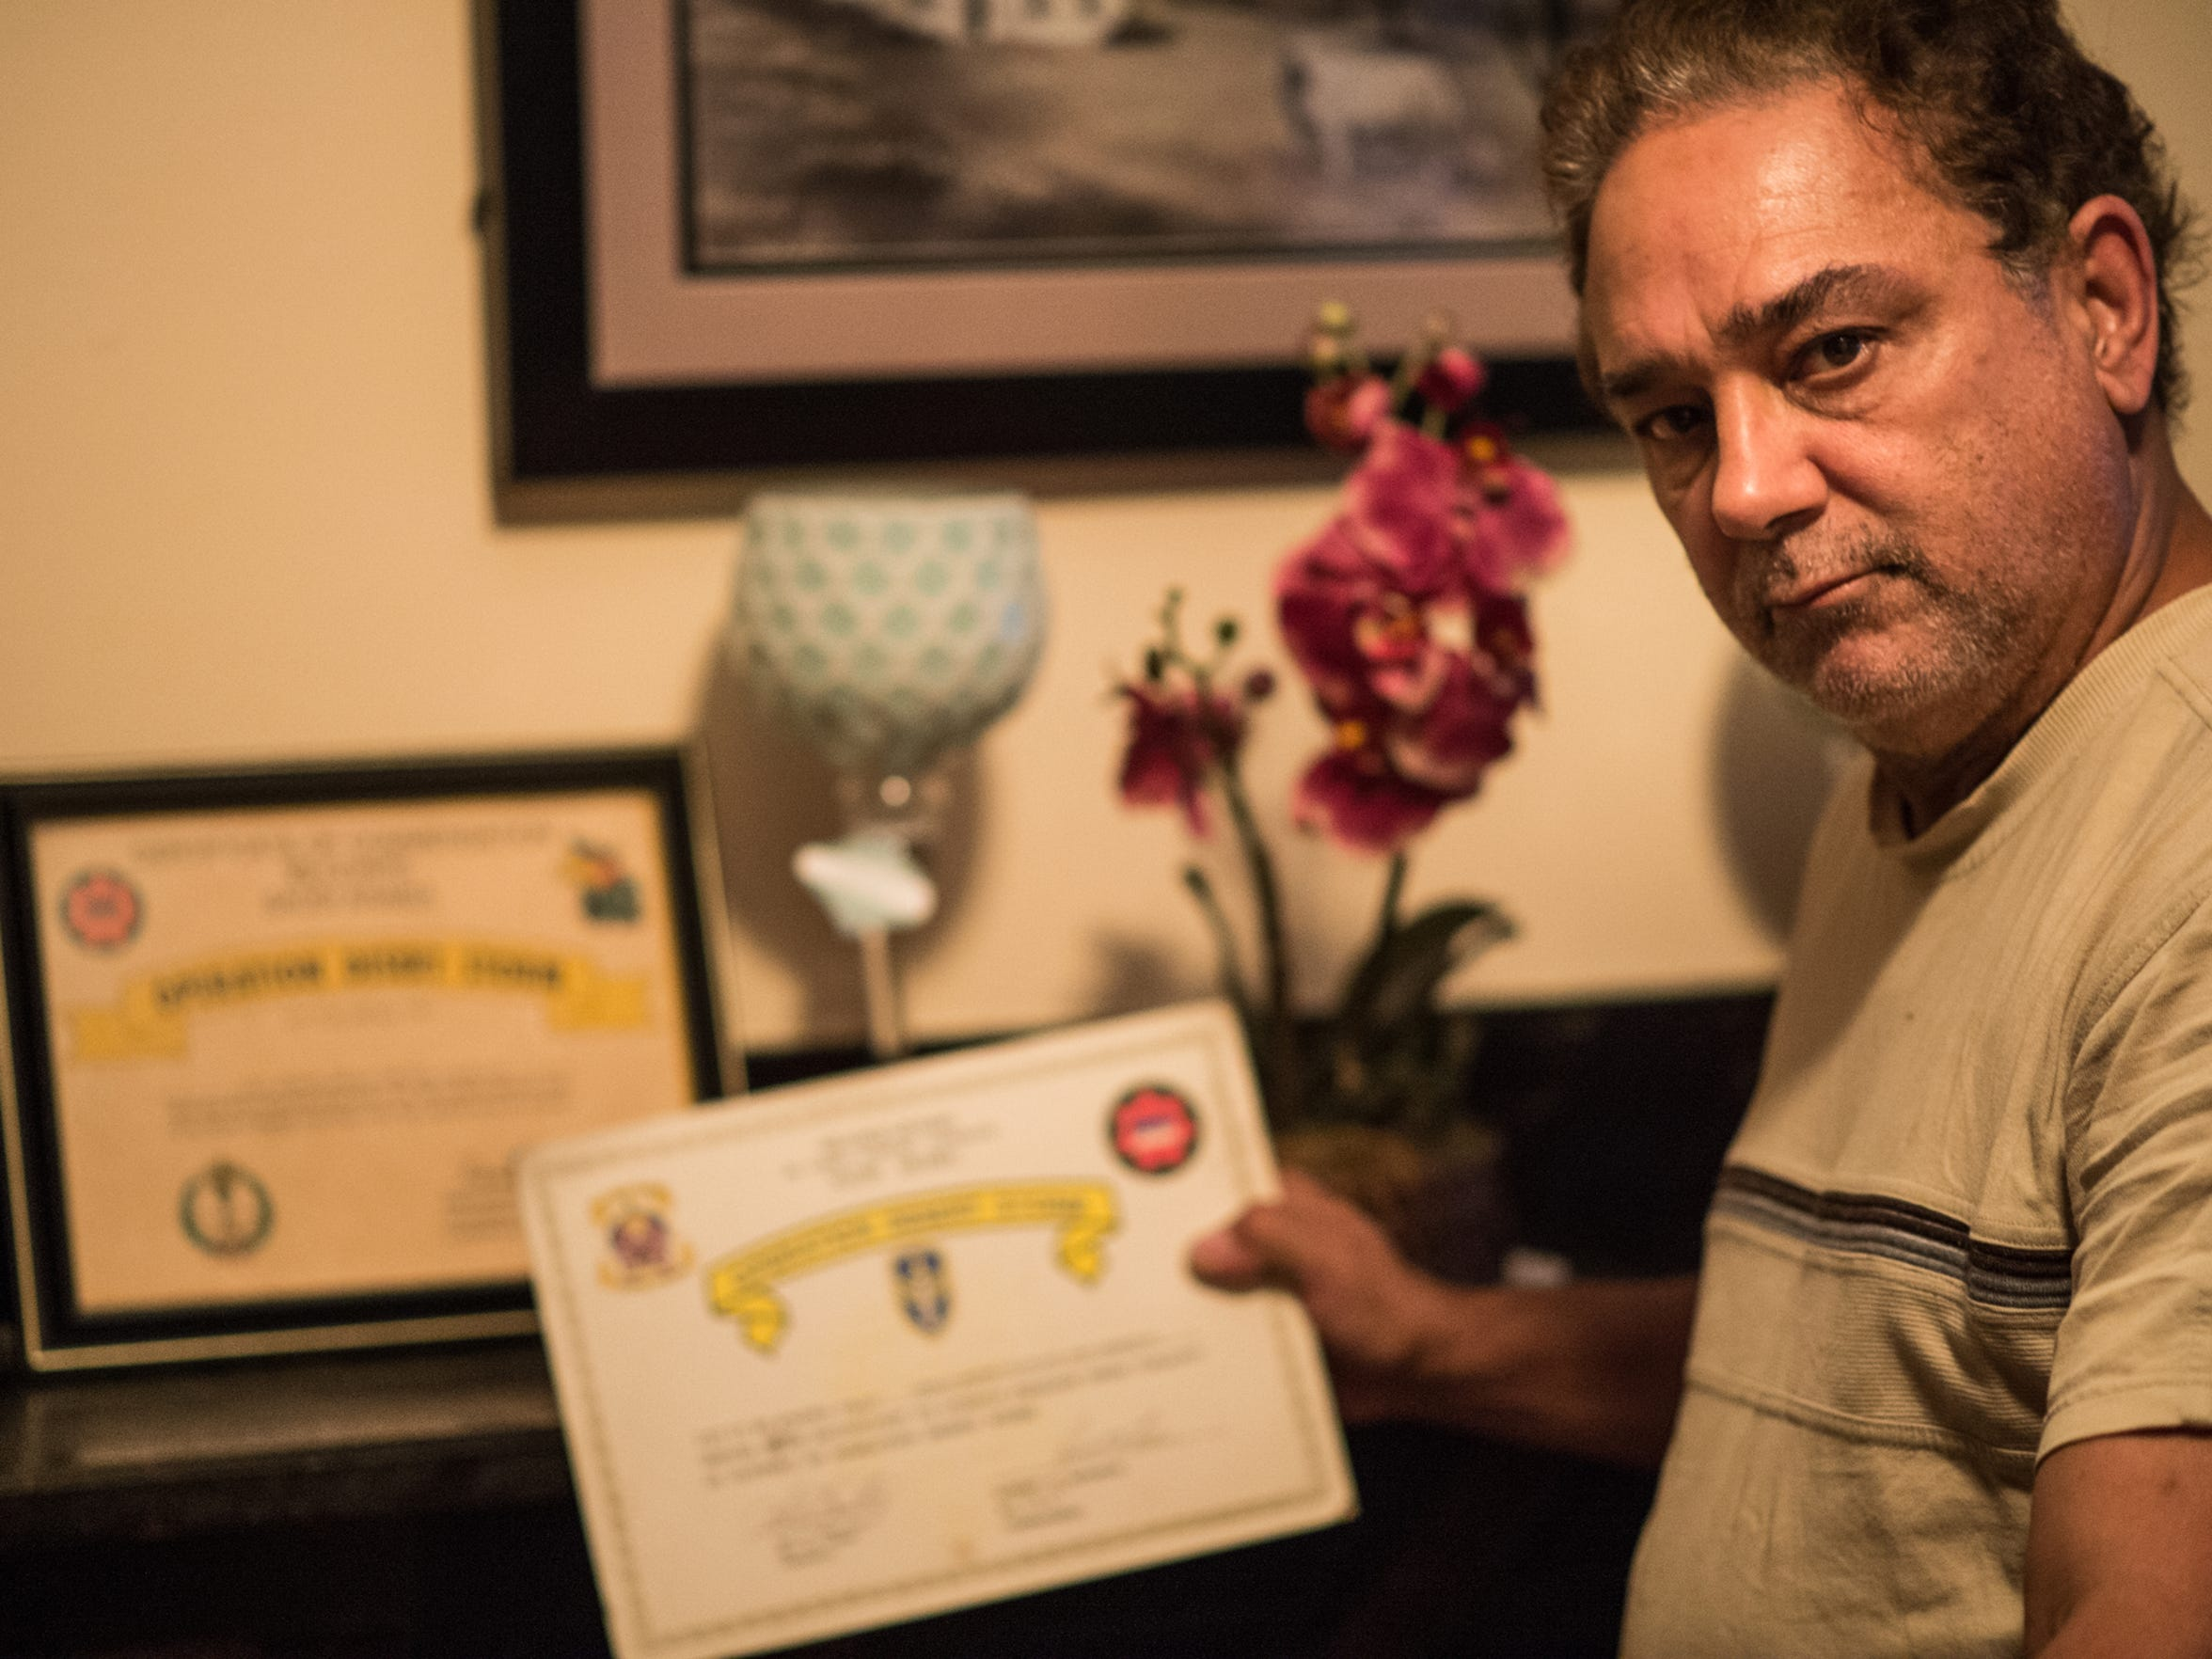 Arquelio Martinez, was a staff sergeant in Army National Guard and served in Operation Desert Storm.  He has a variety of neck and spinal issues related to his active National Guard service in the first Gulf War, and isn't satisfied with VA coverage.